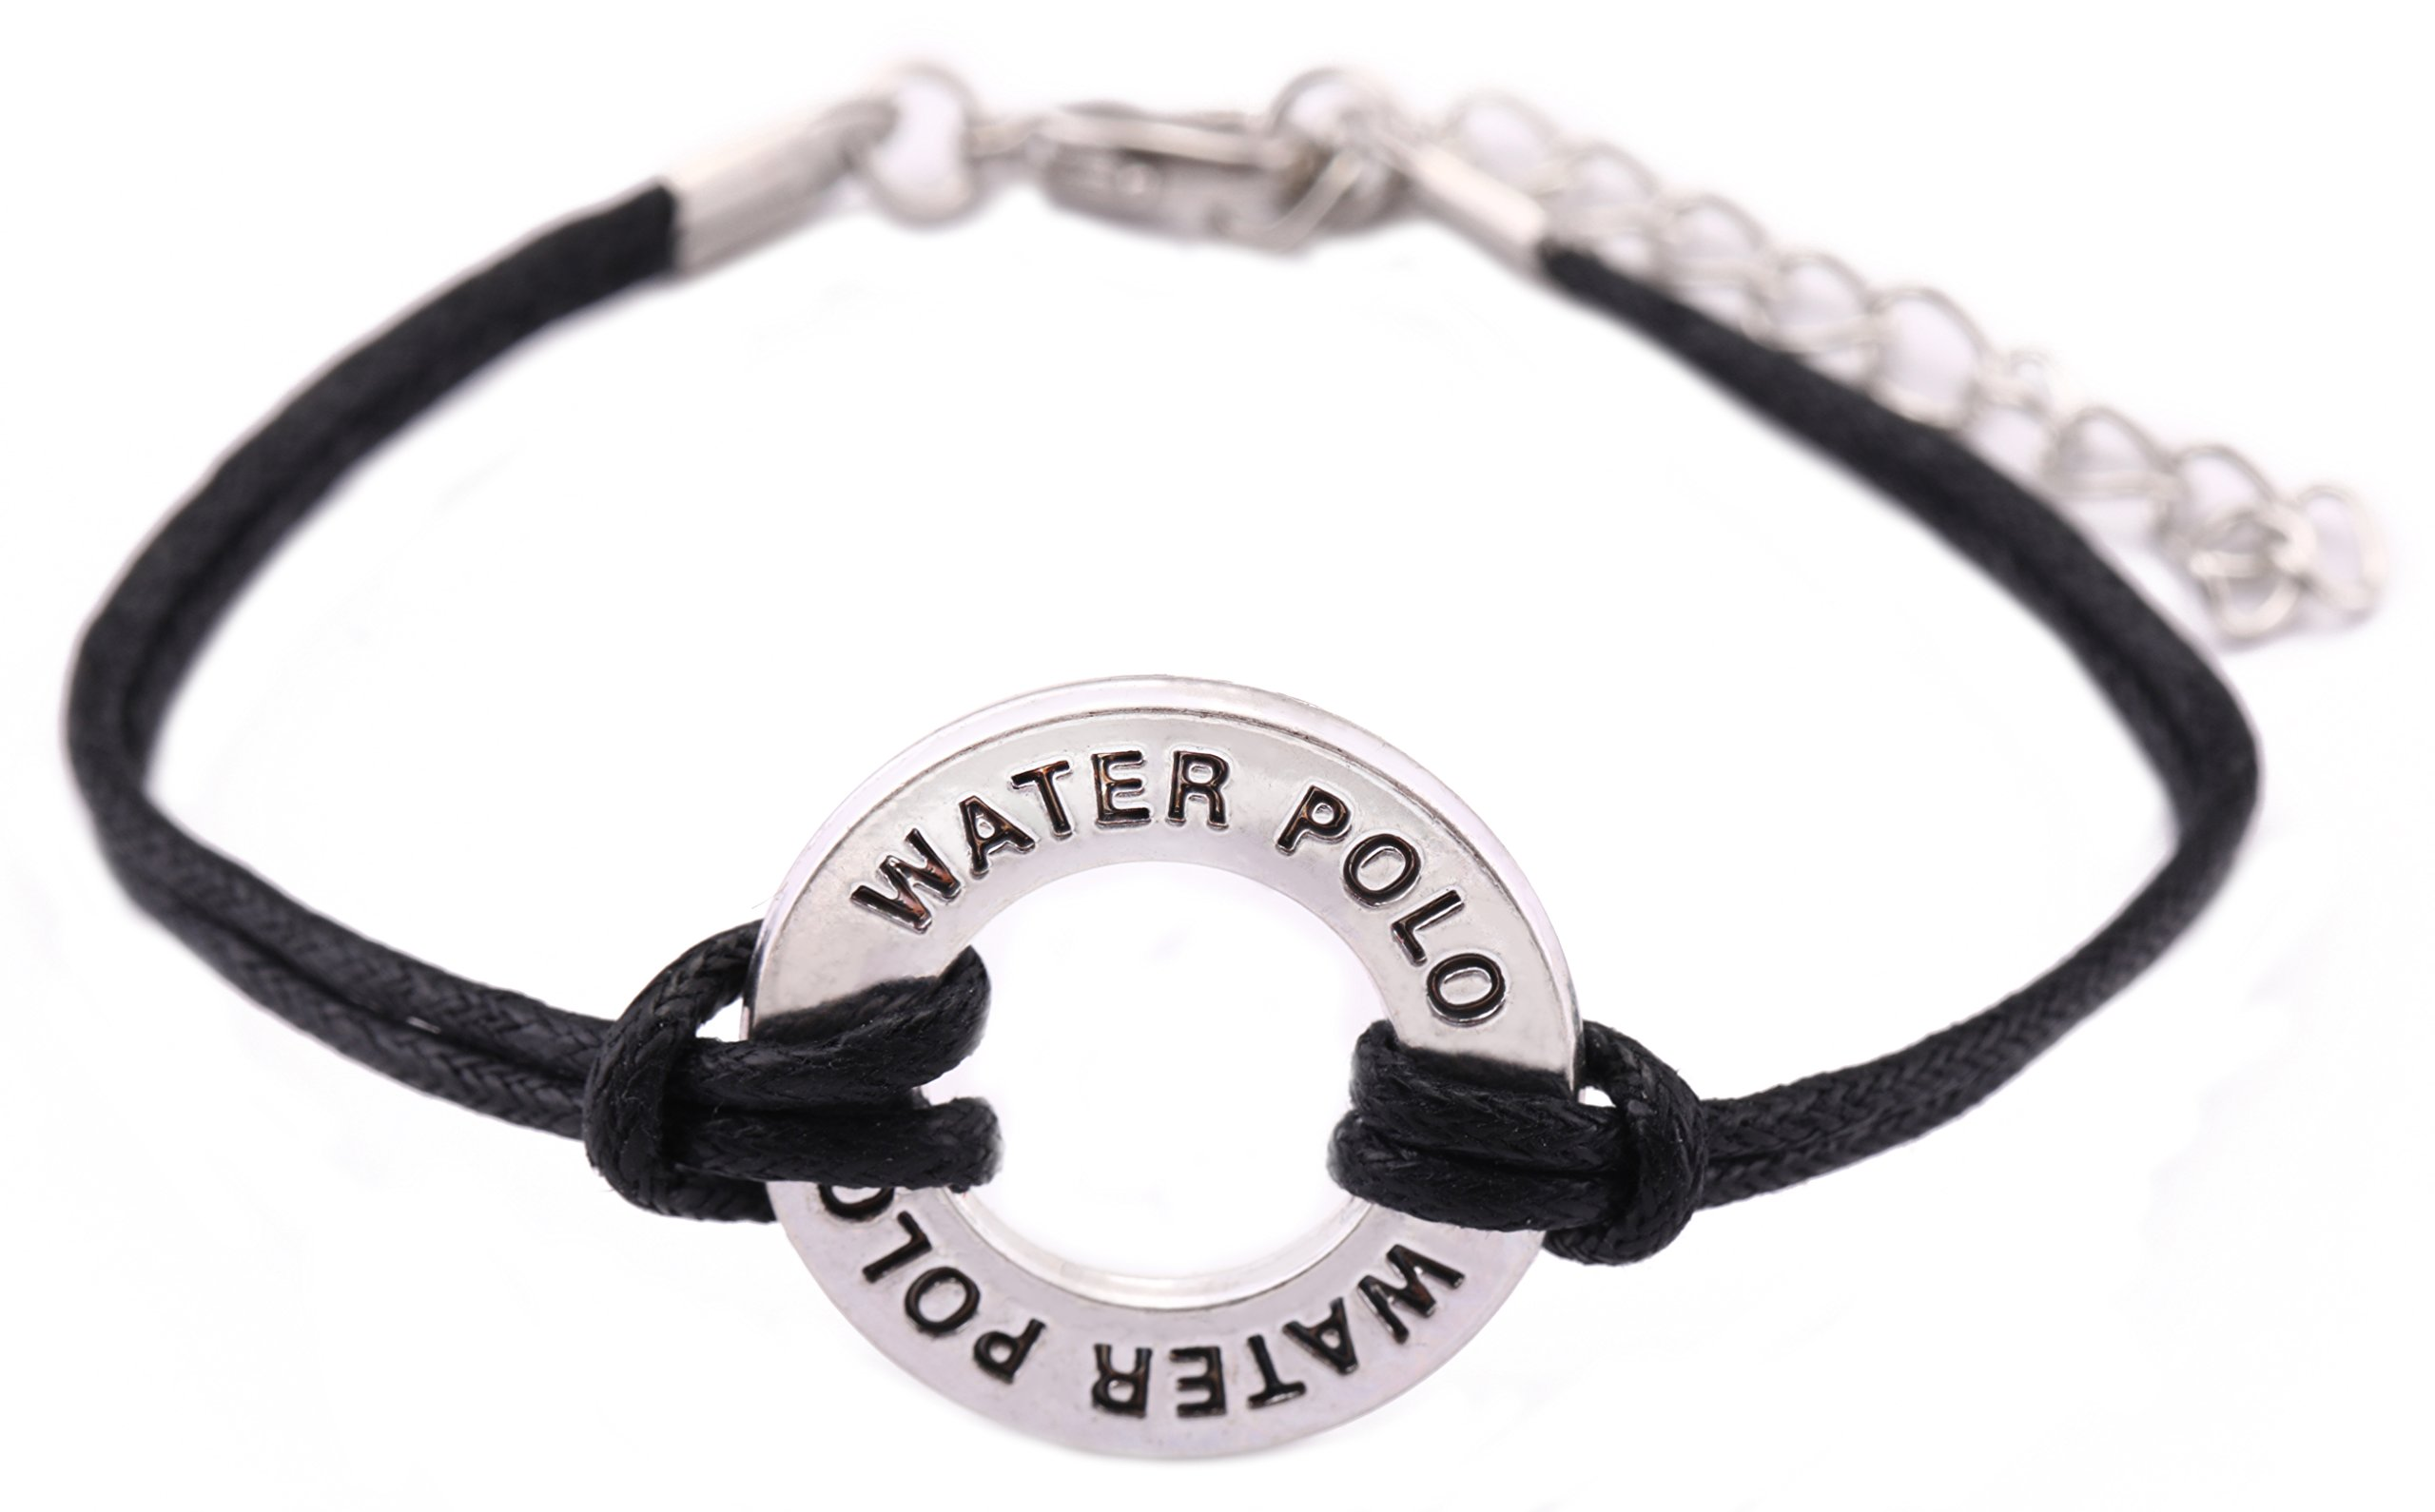 Teamer Adjustable Wax Cord Bracelet Message Water polo Charm Sports Jewelry for Woman/Man Best Gifts